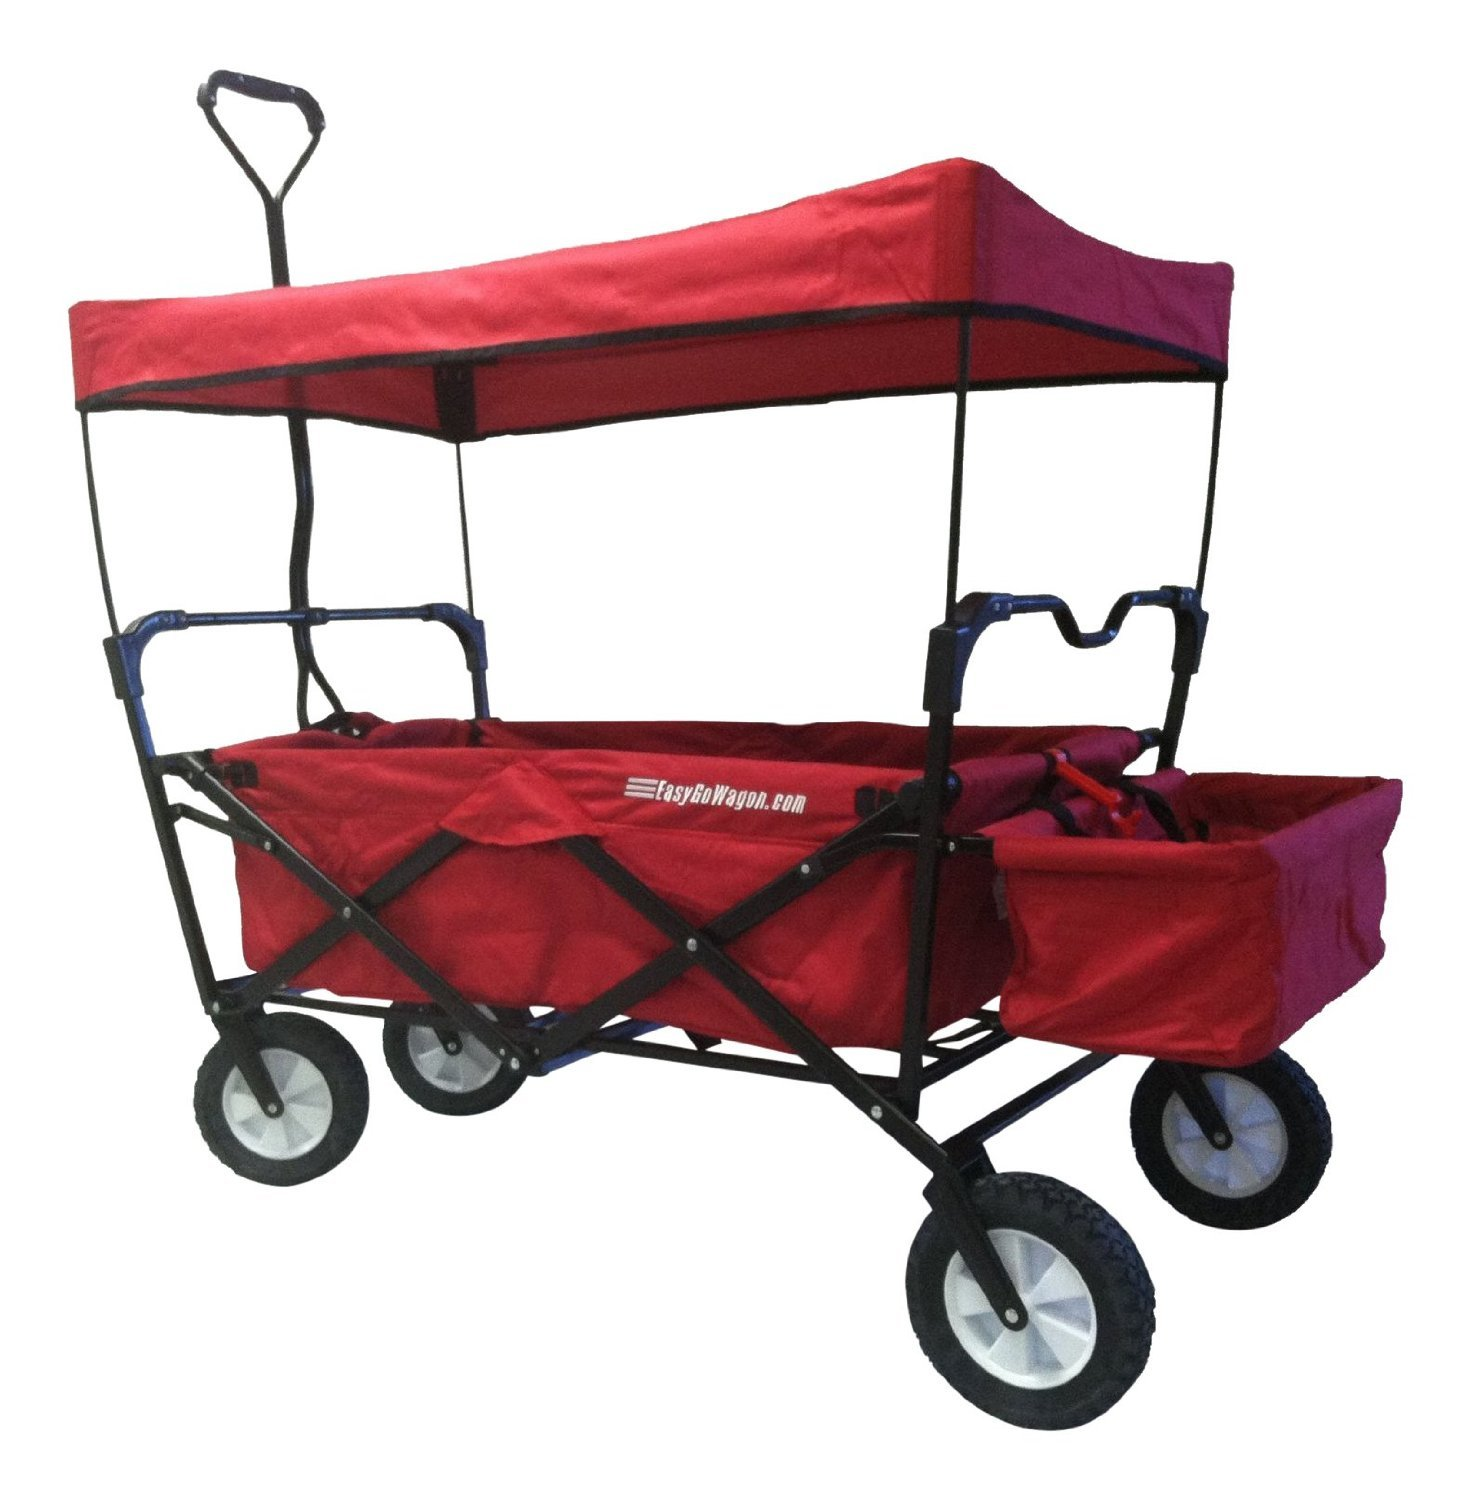 EasyGoProducts Wagon Red Folding Collapsible Utility, Fits in Trunk of Standard Car